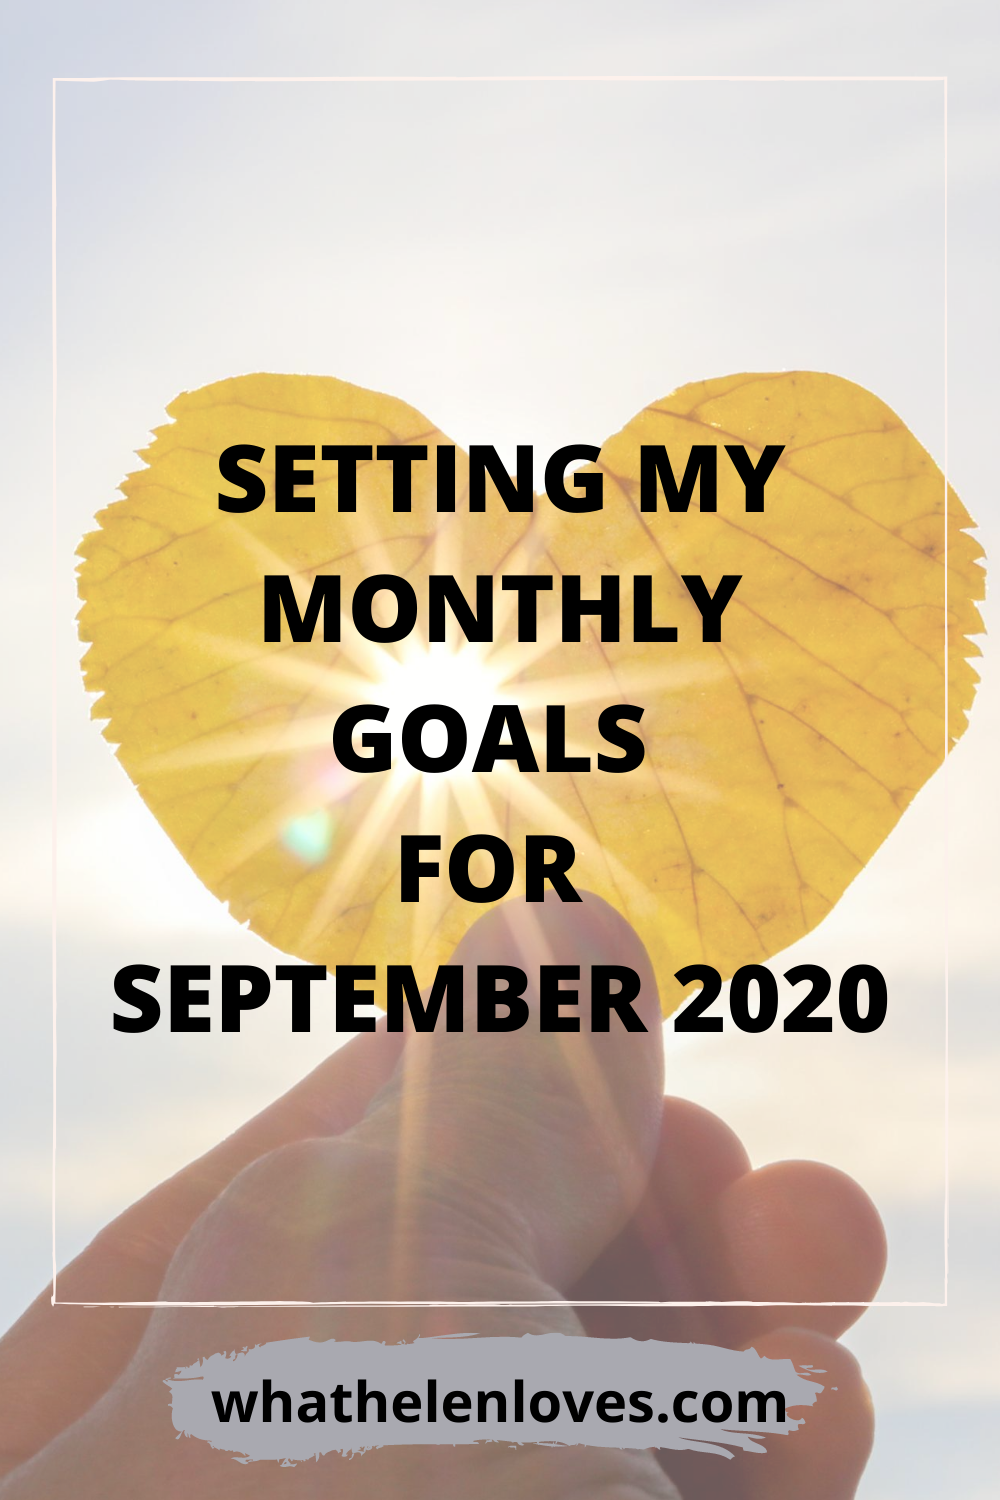 Pinterest pin for a post about setting my monthly goals for September 2020